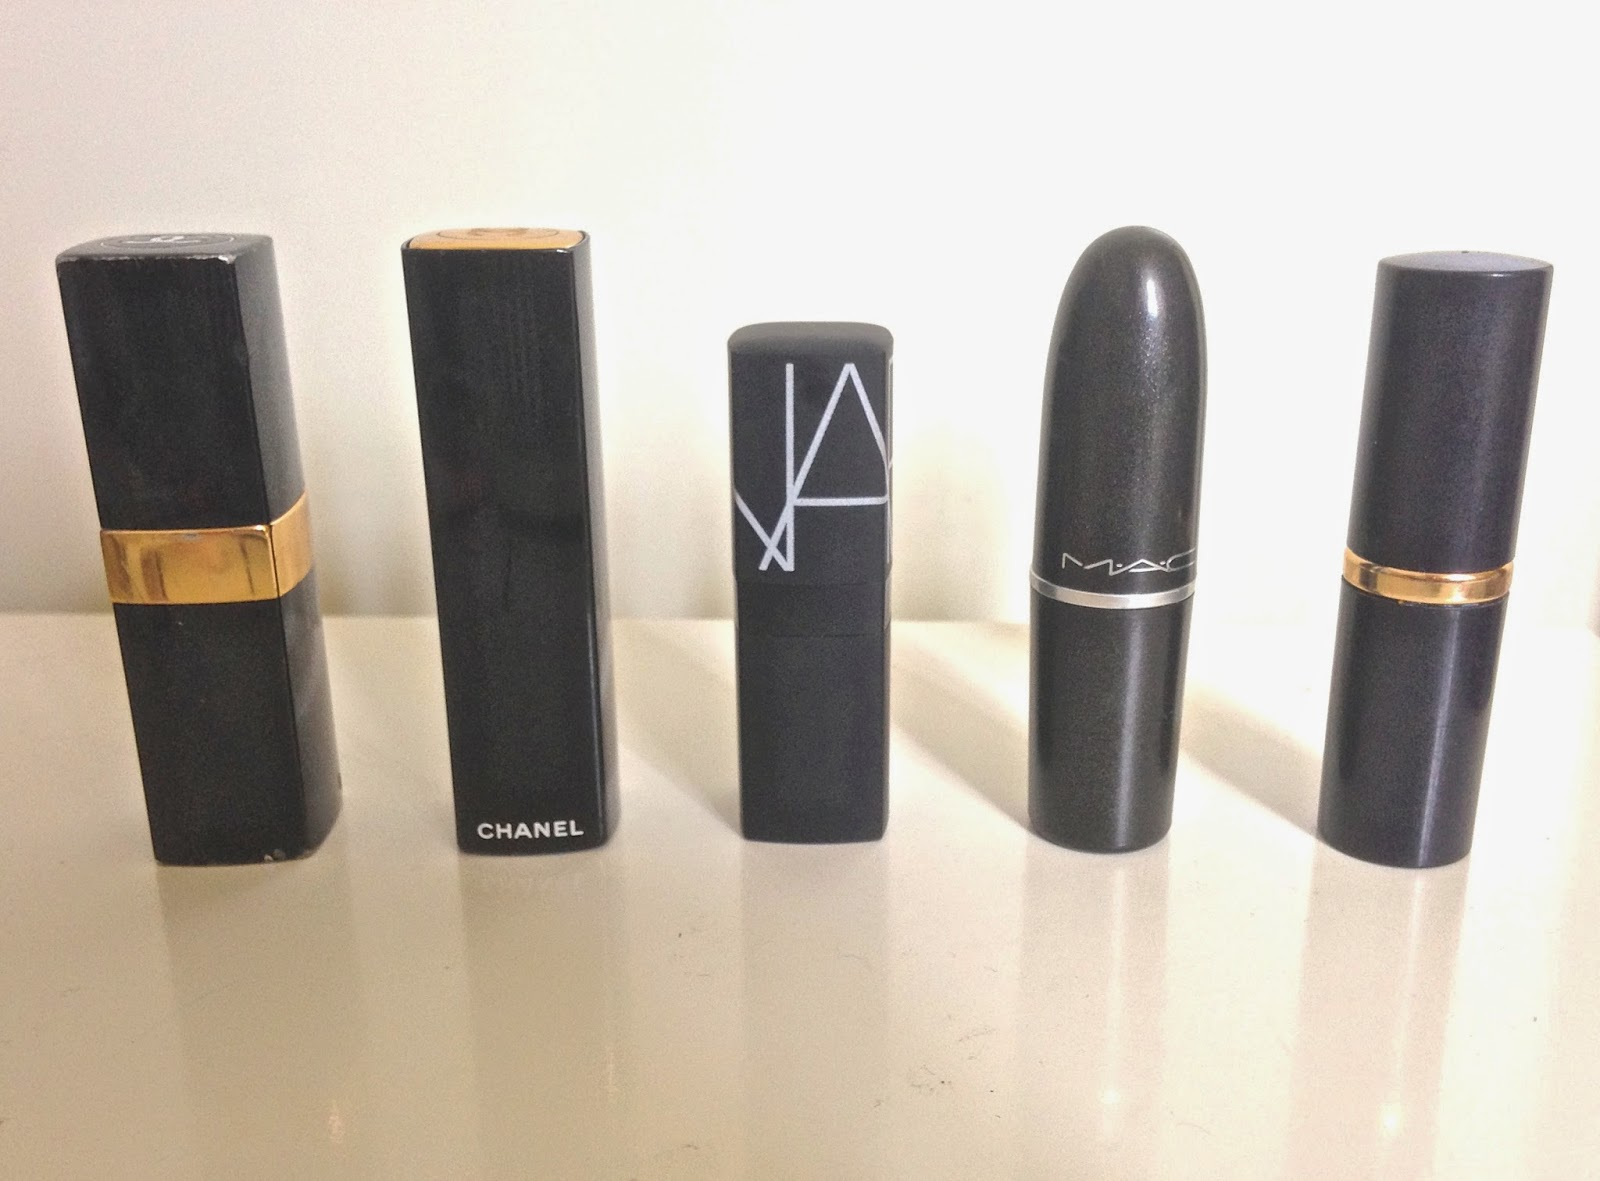 Image of 5 lipsticks, including Chanel, Nars, Mac cosmetics and Estée Lauder